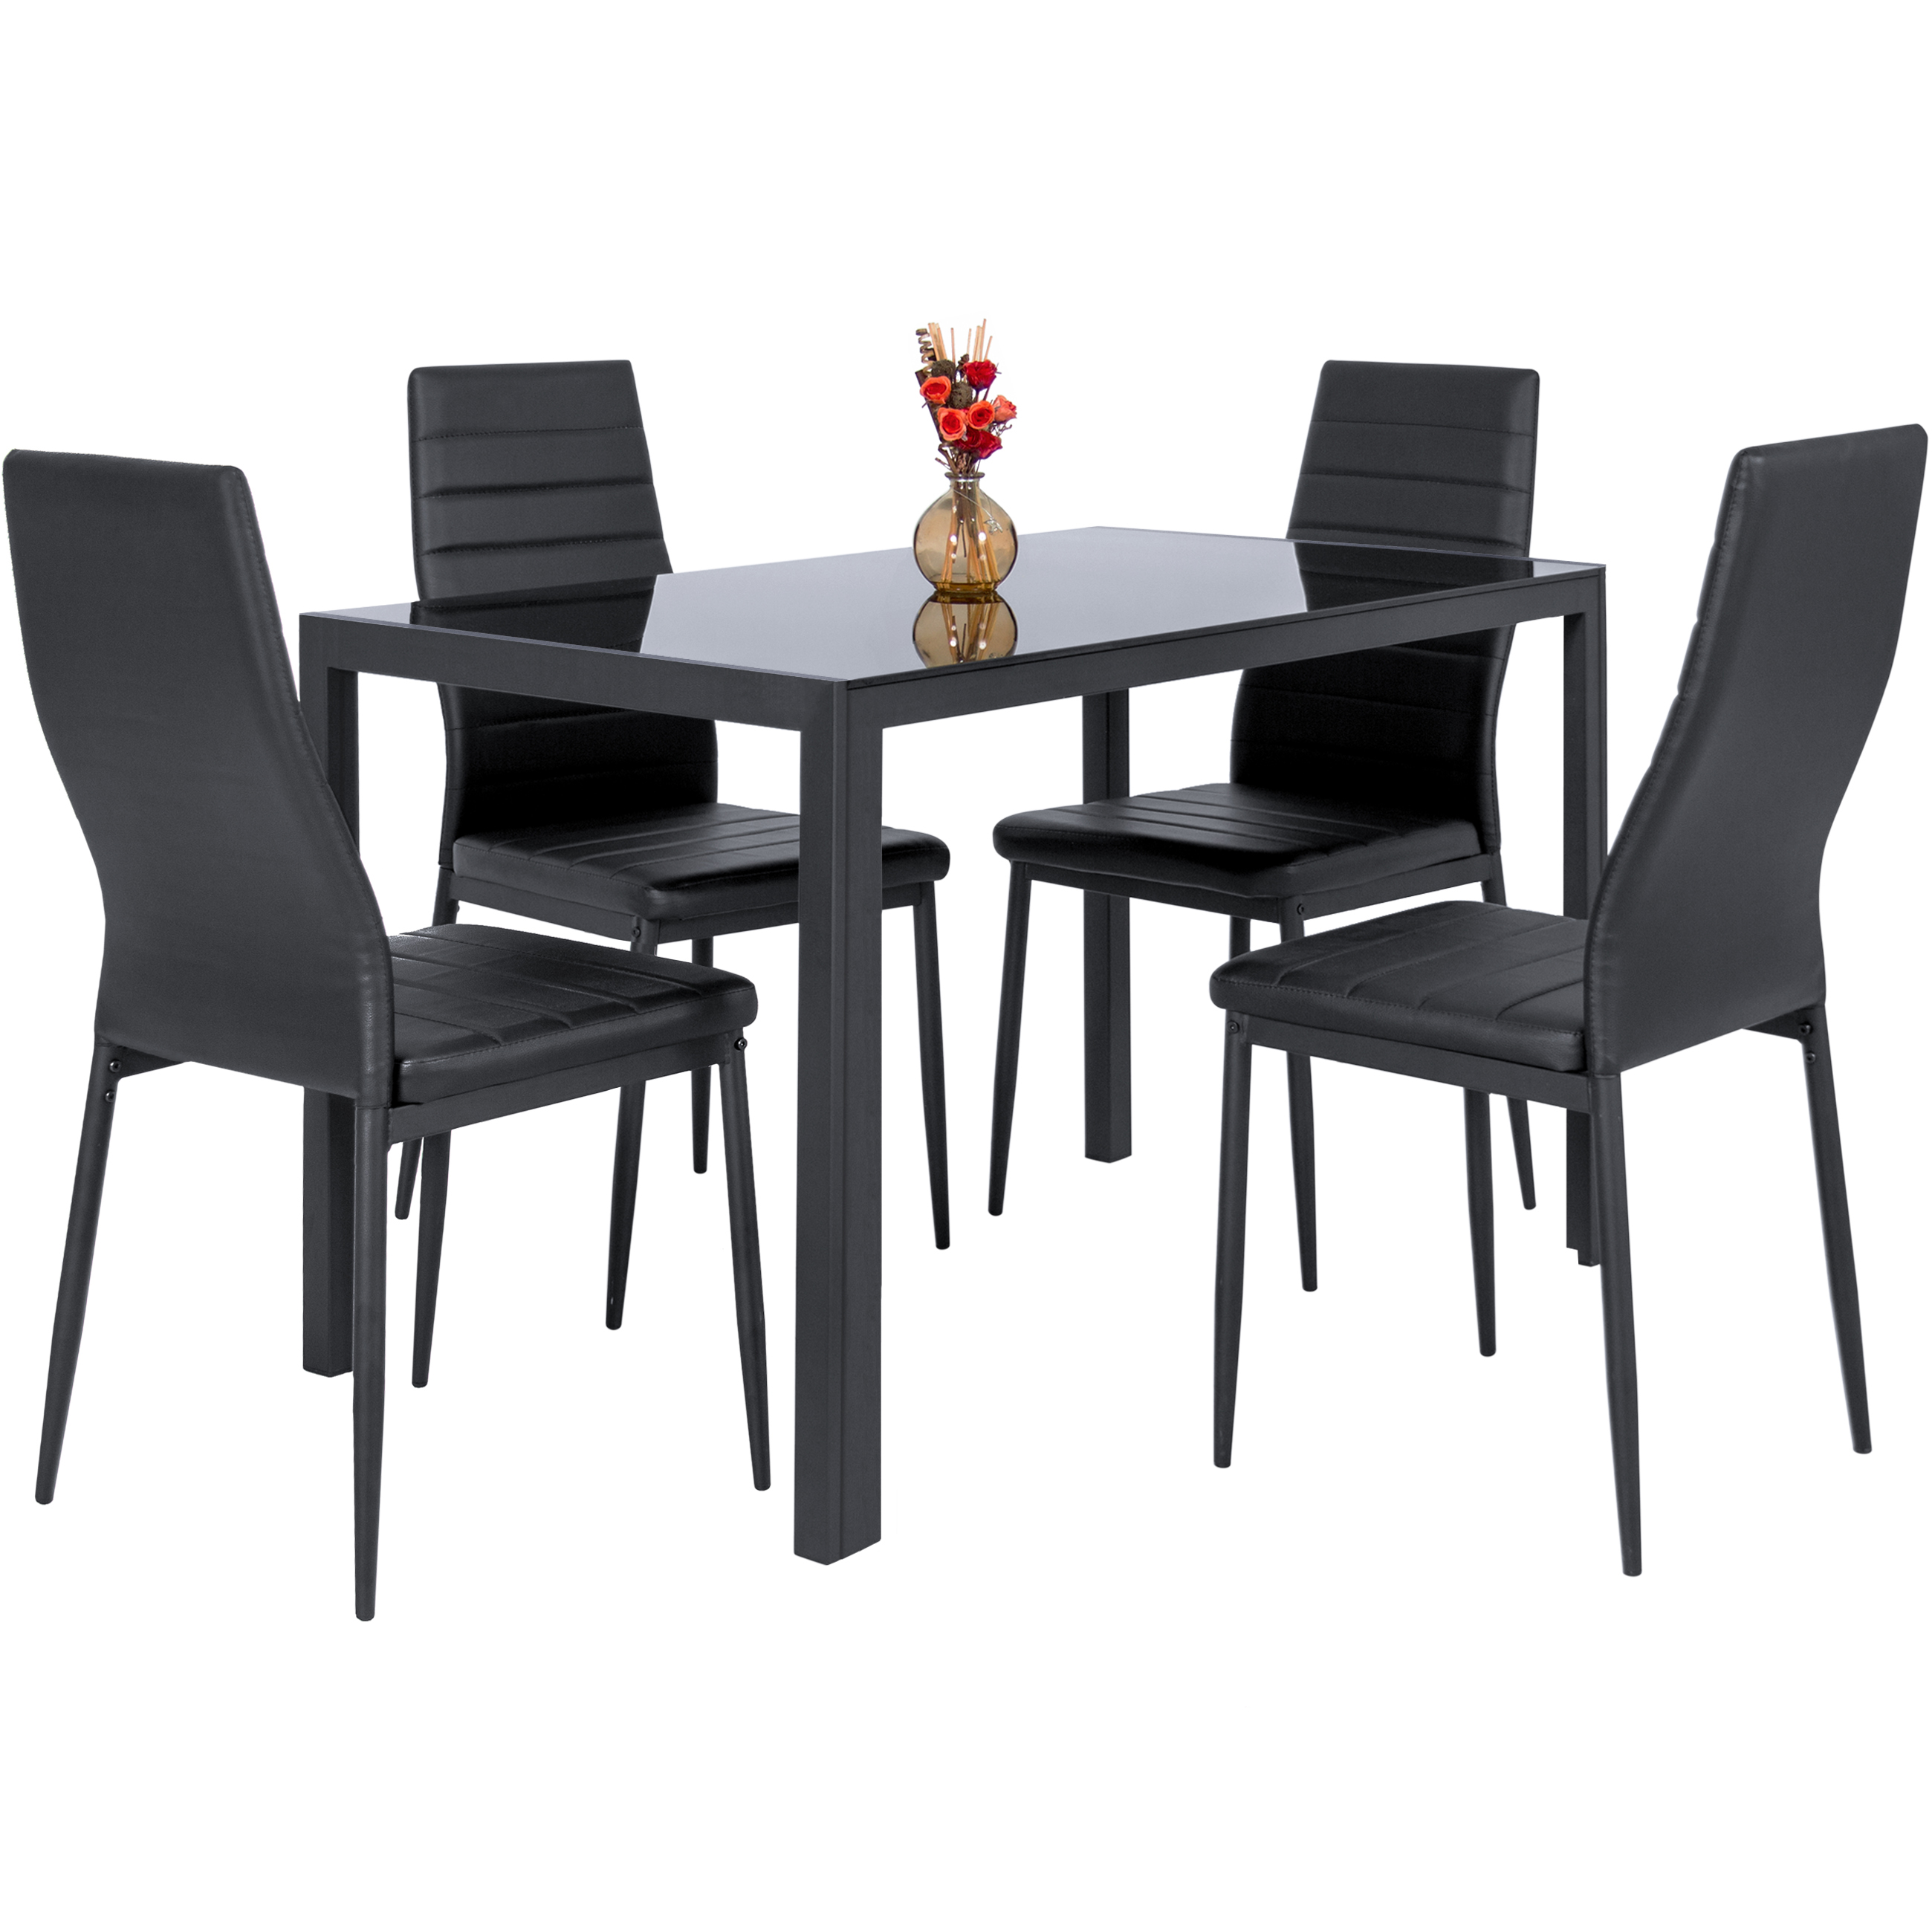 Best Choice Products 5 Piece Kitchen Dining Table Set W/ Glass Top